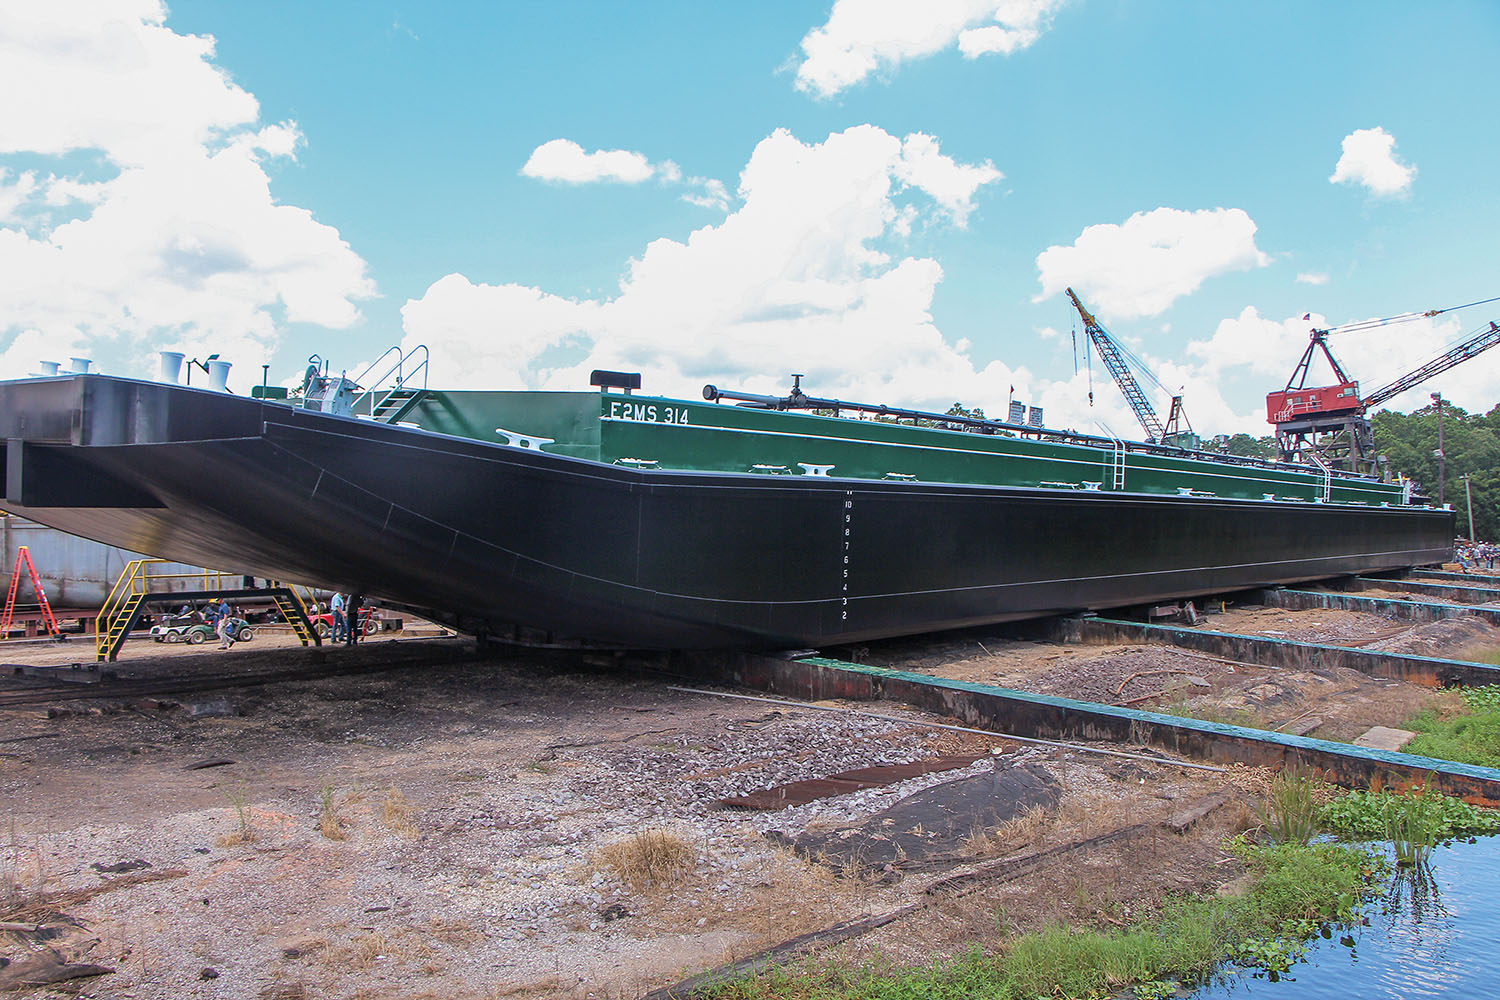 Barge E2MS 314 on launch ways at Arcosa Marine's Madisonville, La., shipyard. (Photo by Jason Koenig)